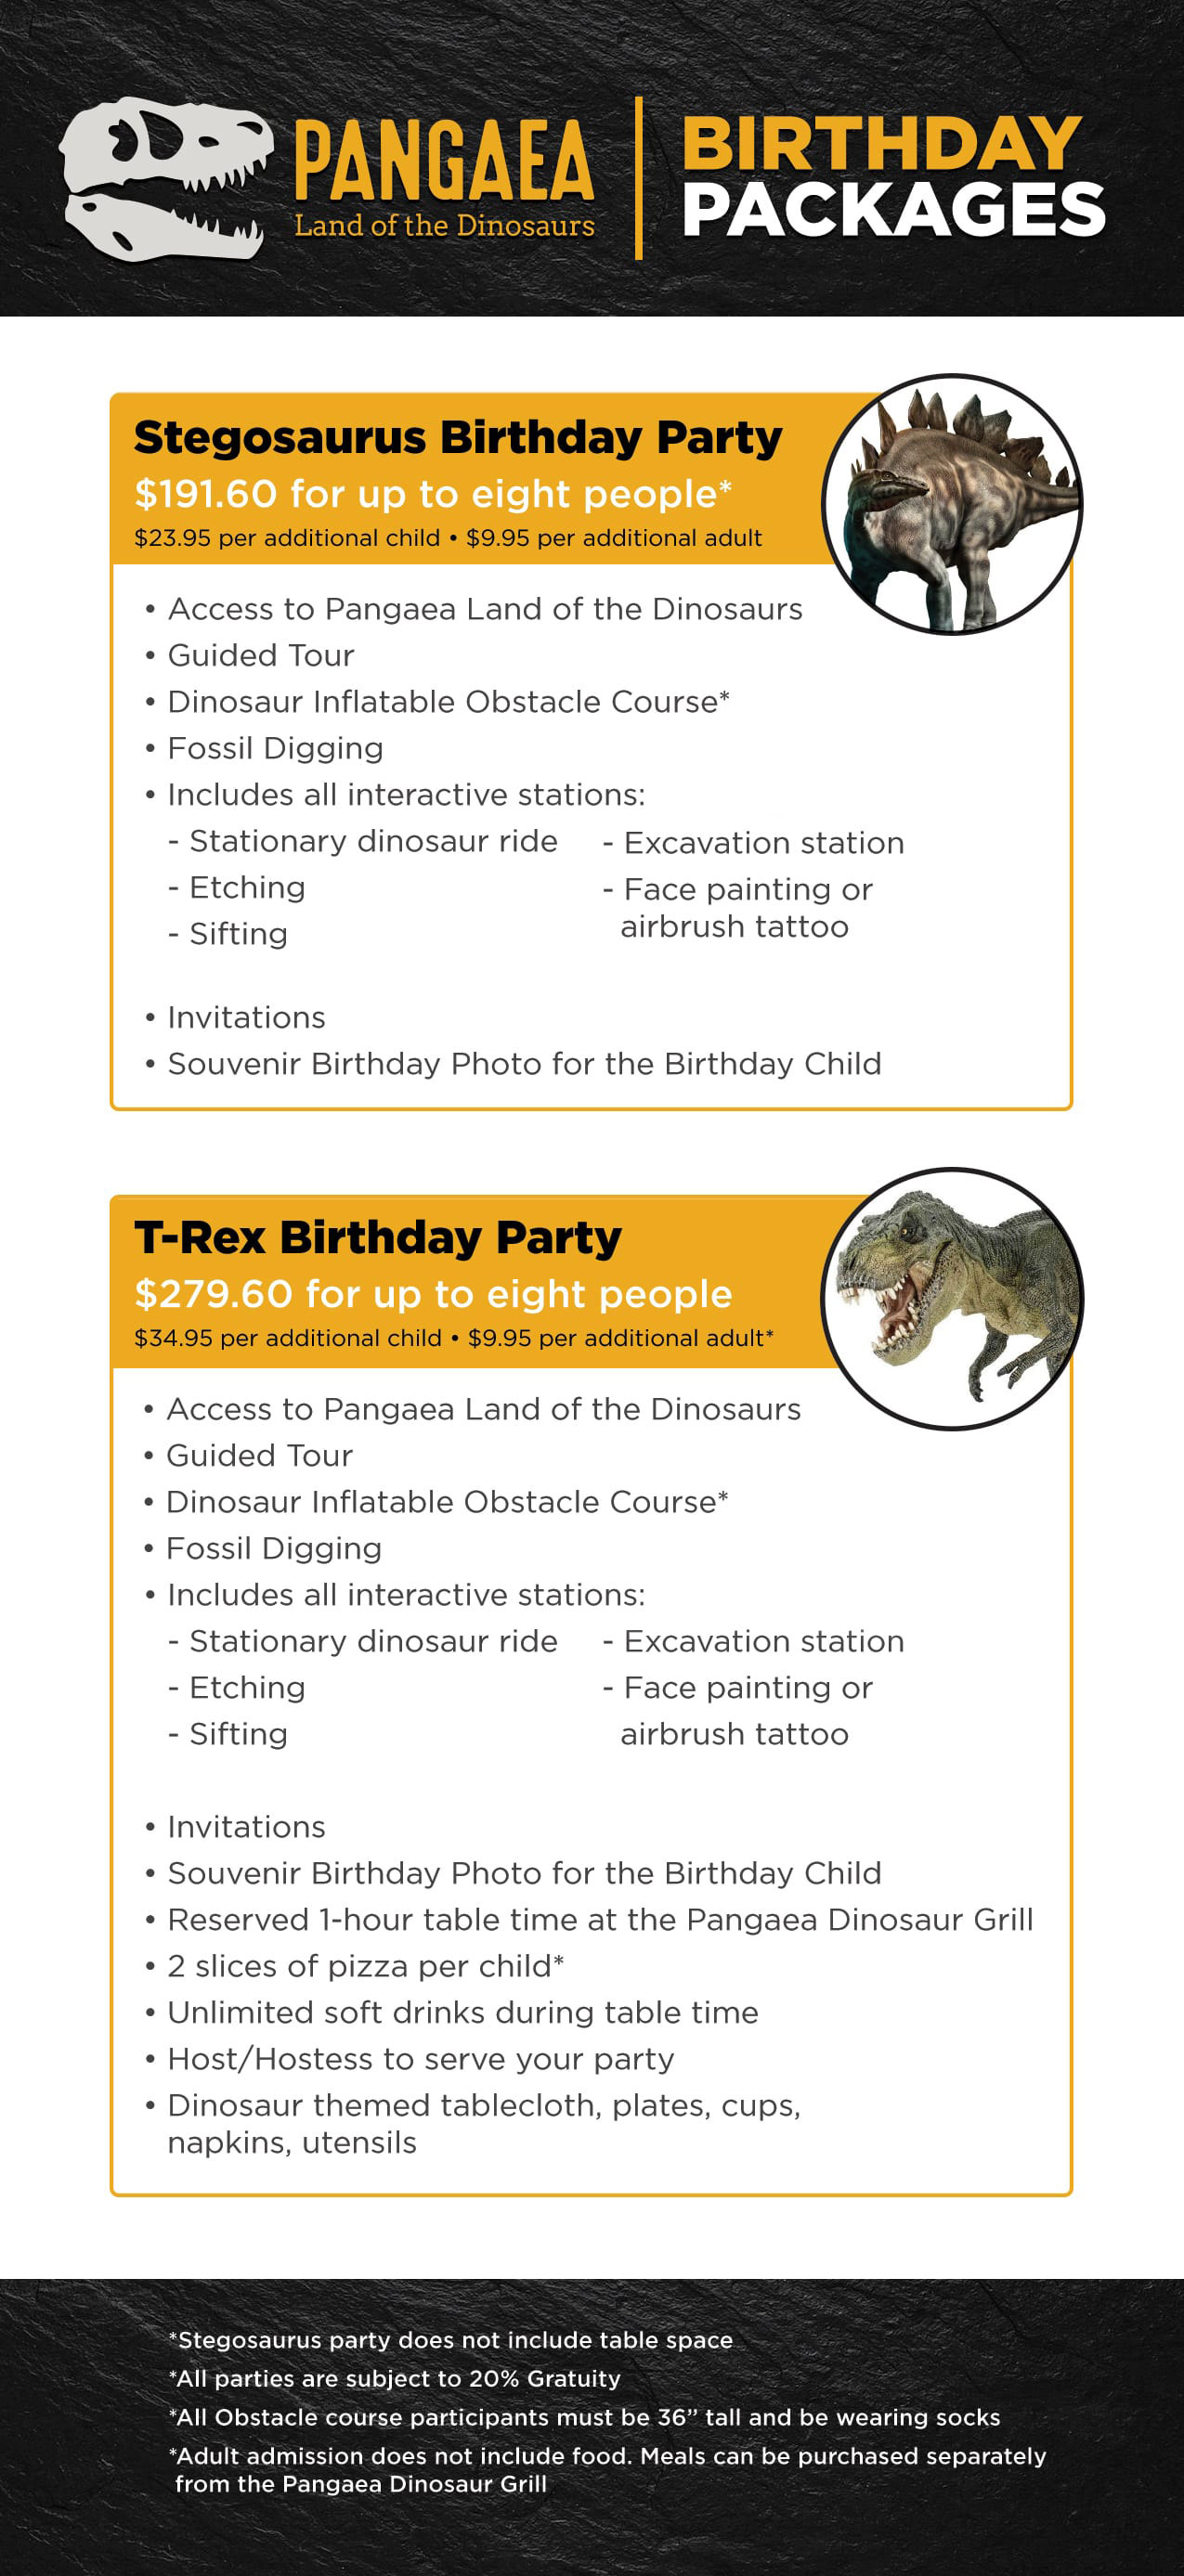 Pangaea-Birthday-Packages_update-03062019